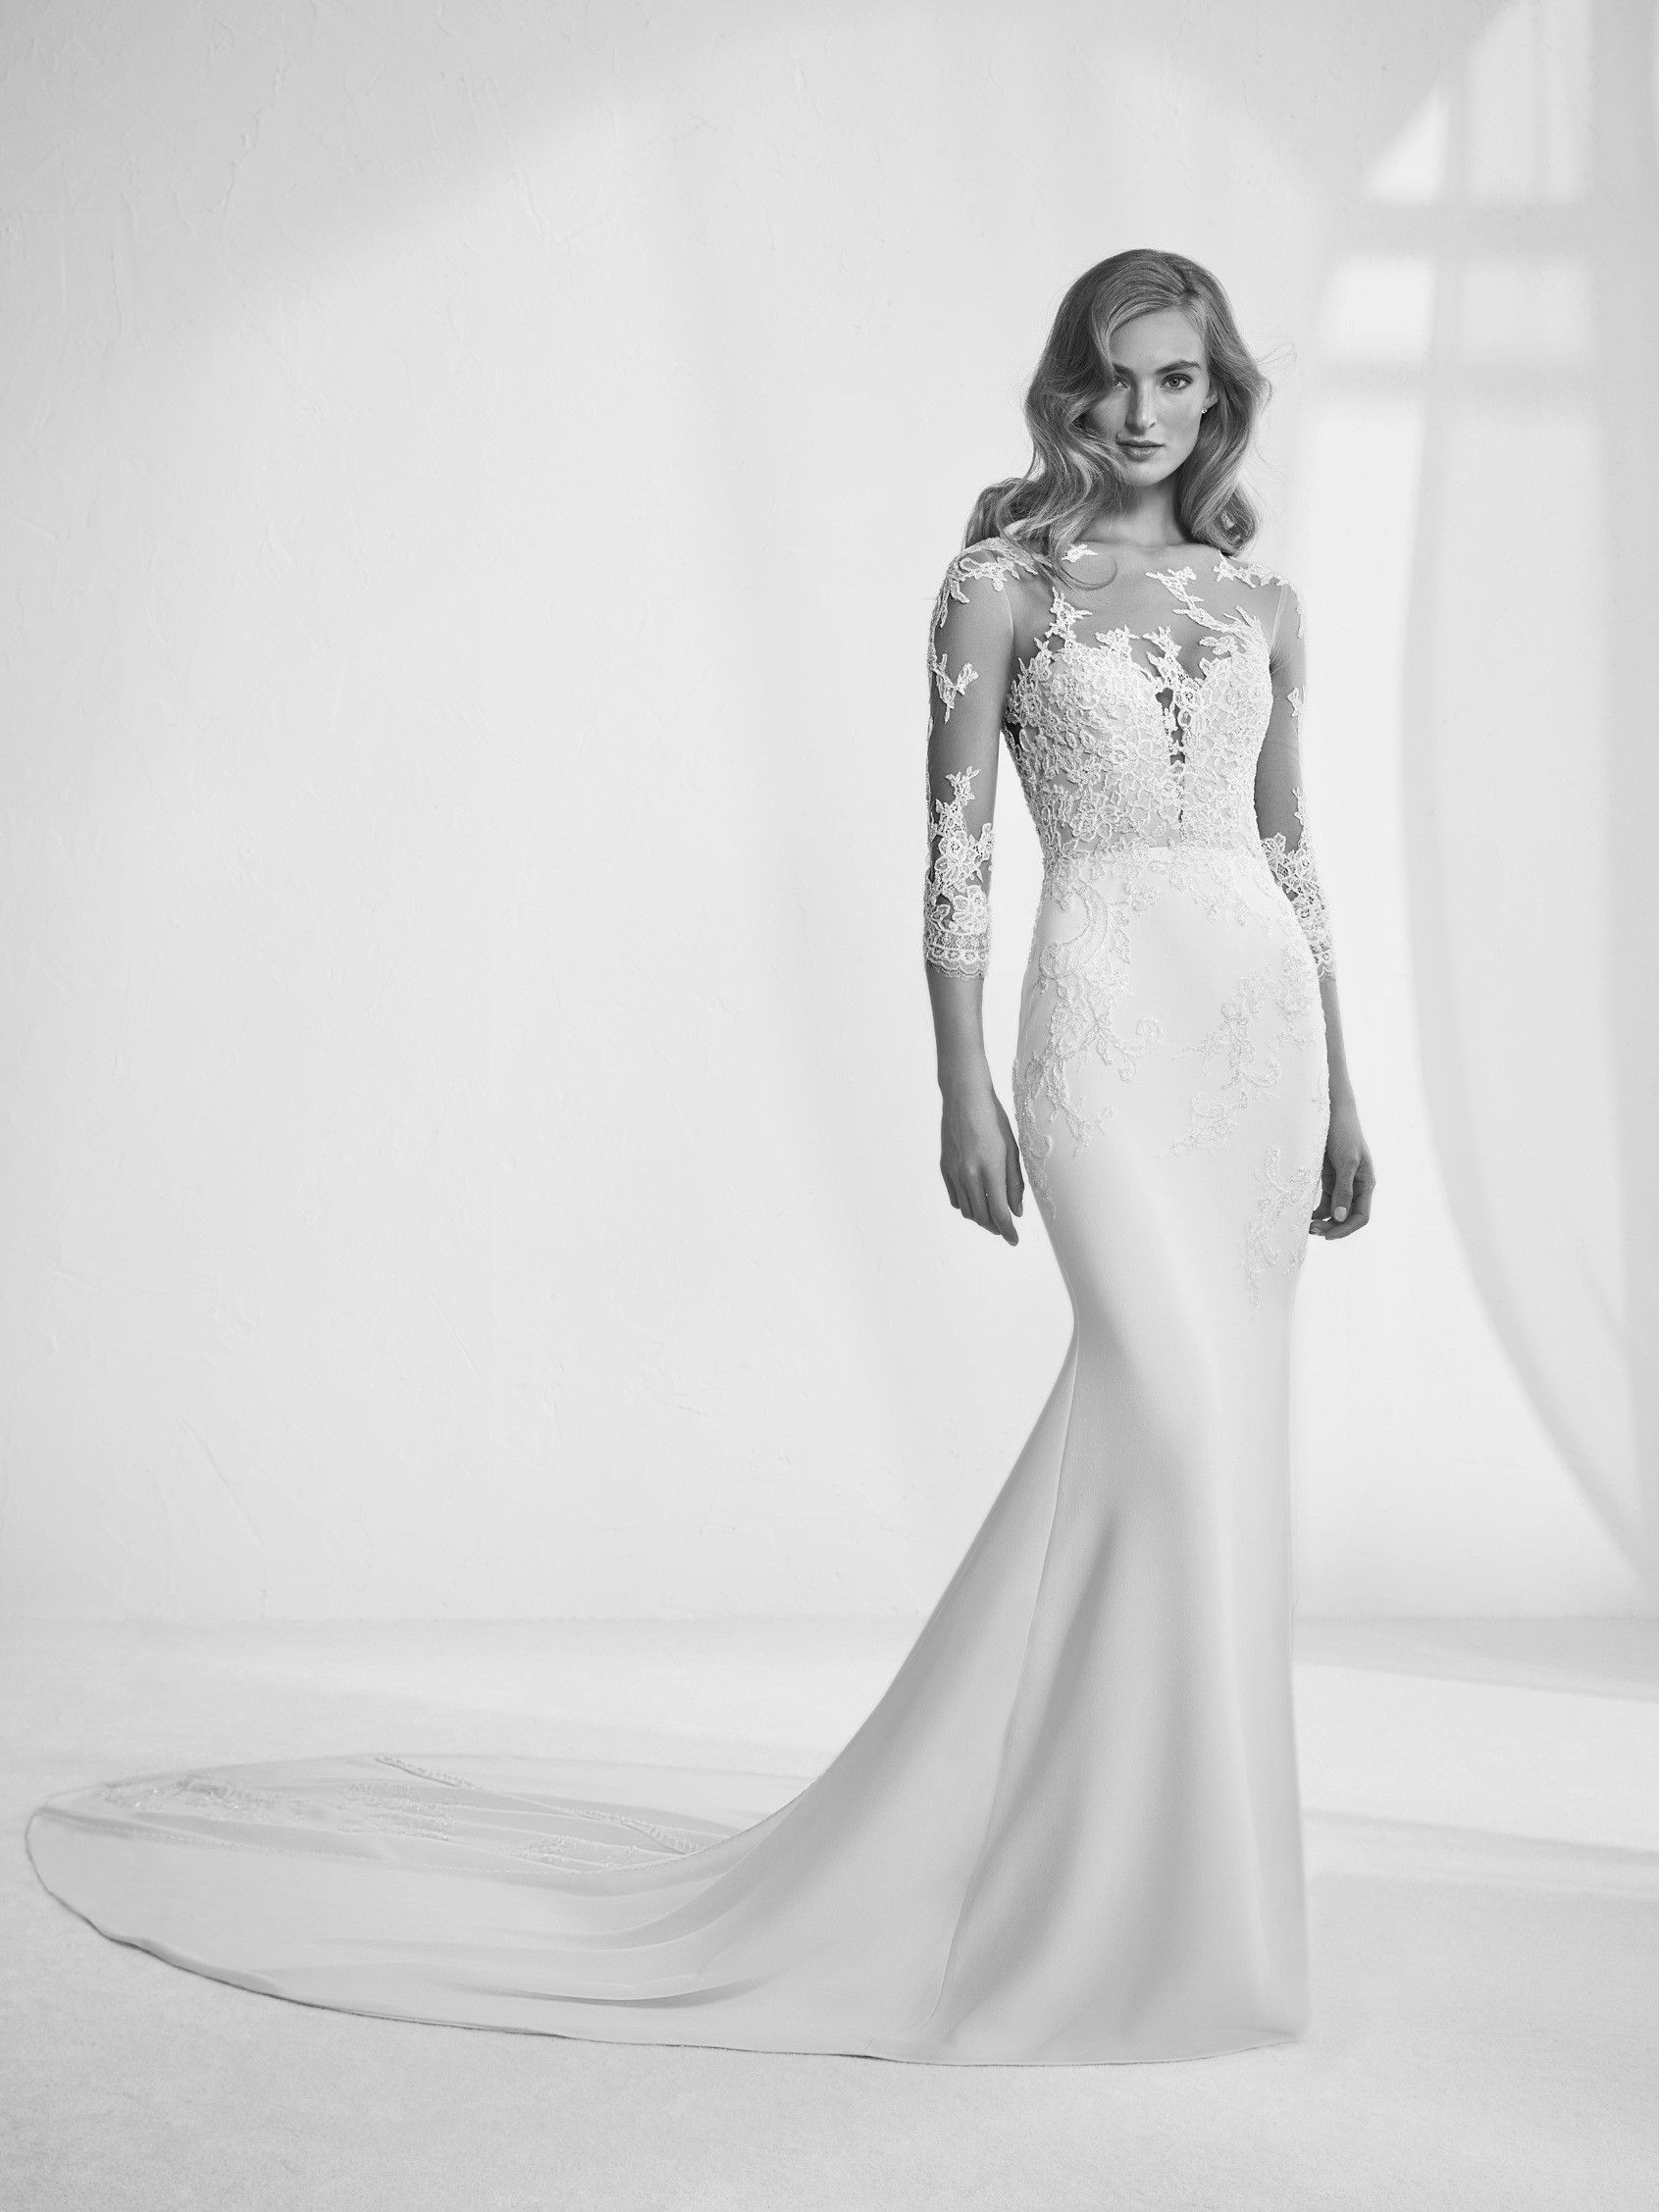 Some dresses make you fall in love at first sight d5ba439de8